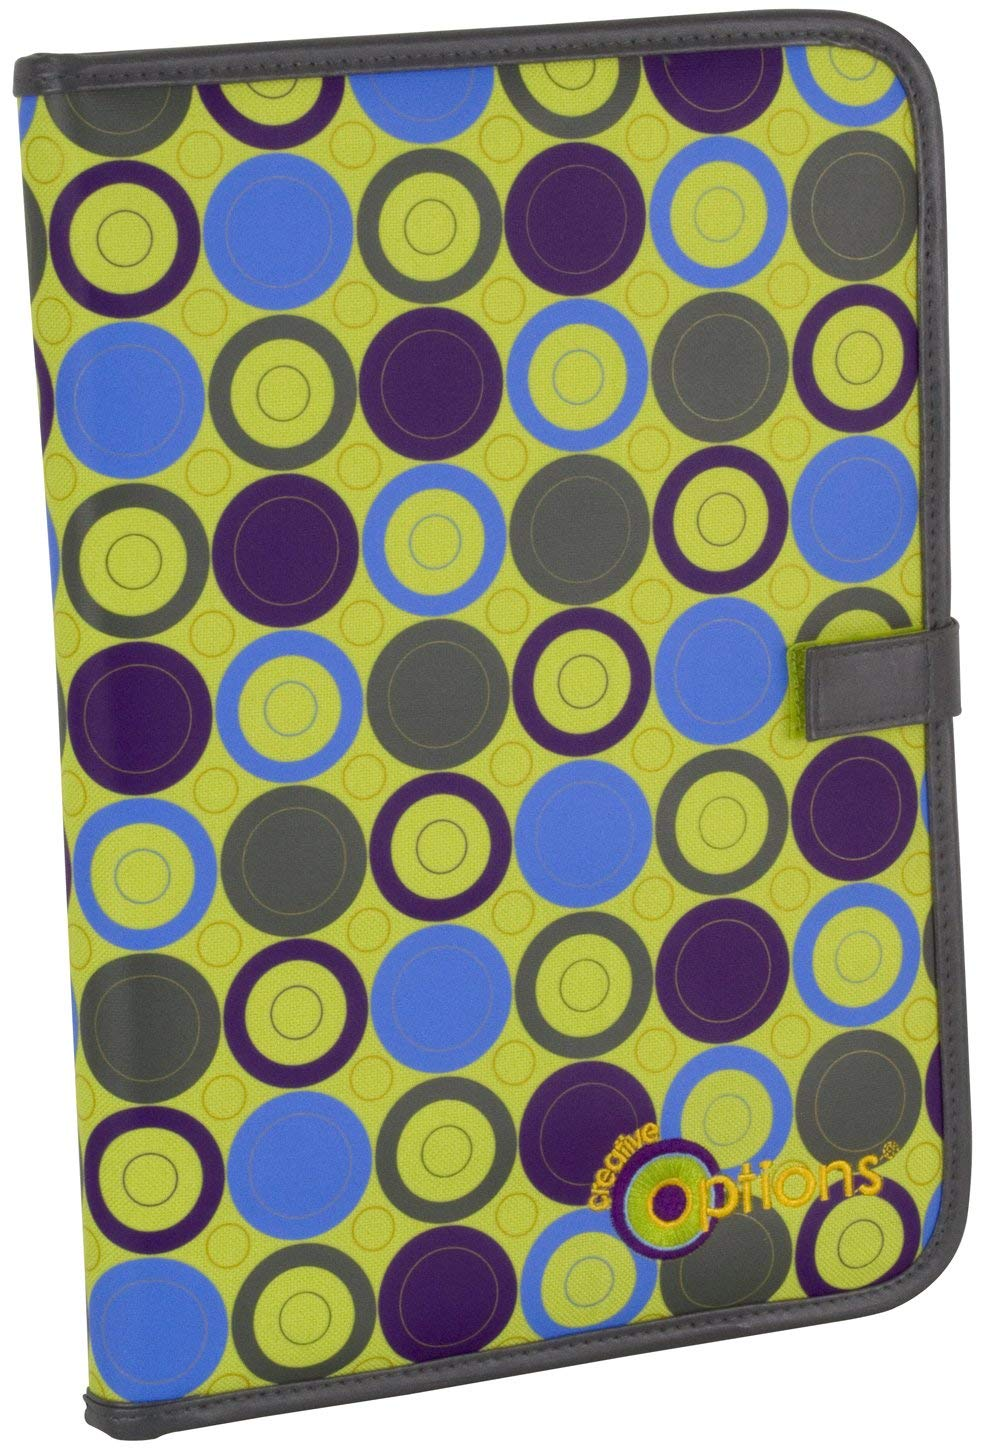 Creative Options Bead Board Folder with Clear Cover, Vineyard Bubble Dots and Sage